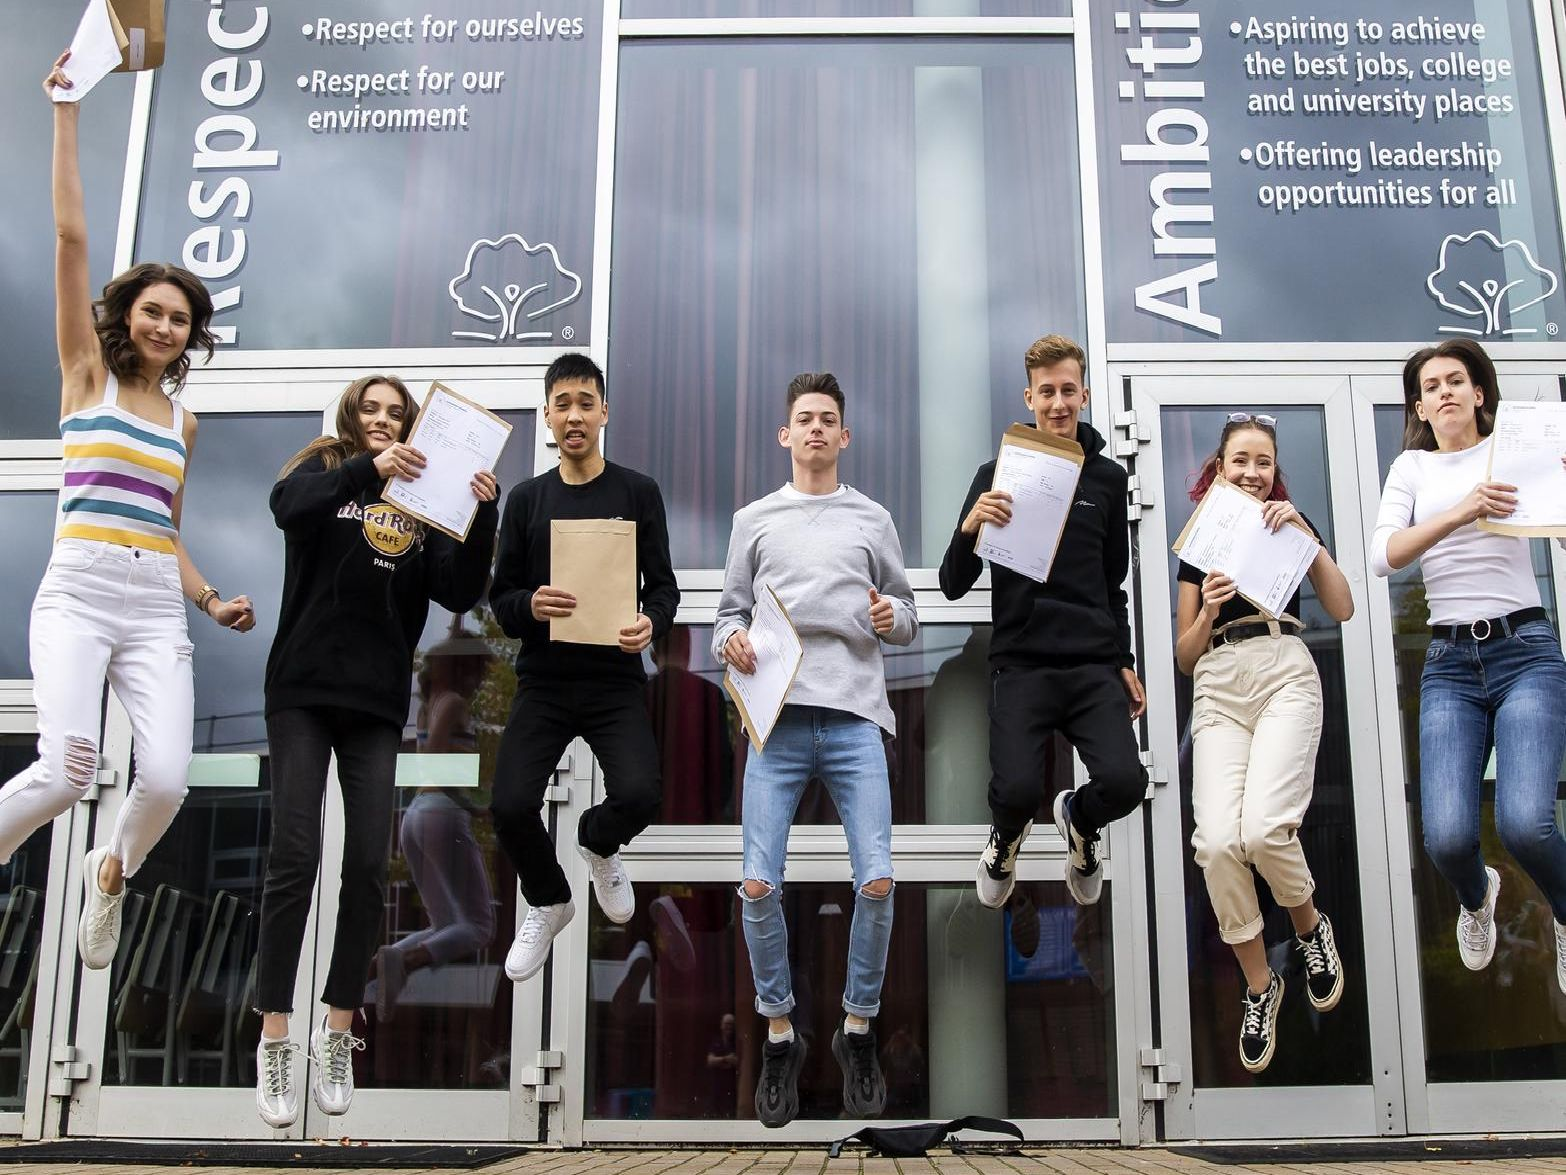 Jumping for joy at Northampton Academy. (L-R) Catalina Creanga, Patricia Vulc, Phillip Ung, Kieran Mason, Tom Walding, Isabelle Hannon-Thompson and Catalina Agachi